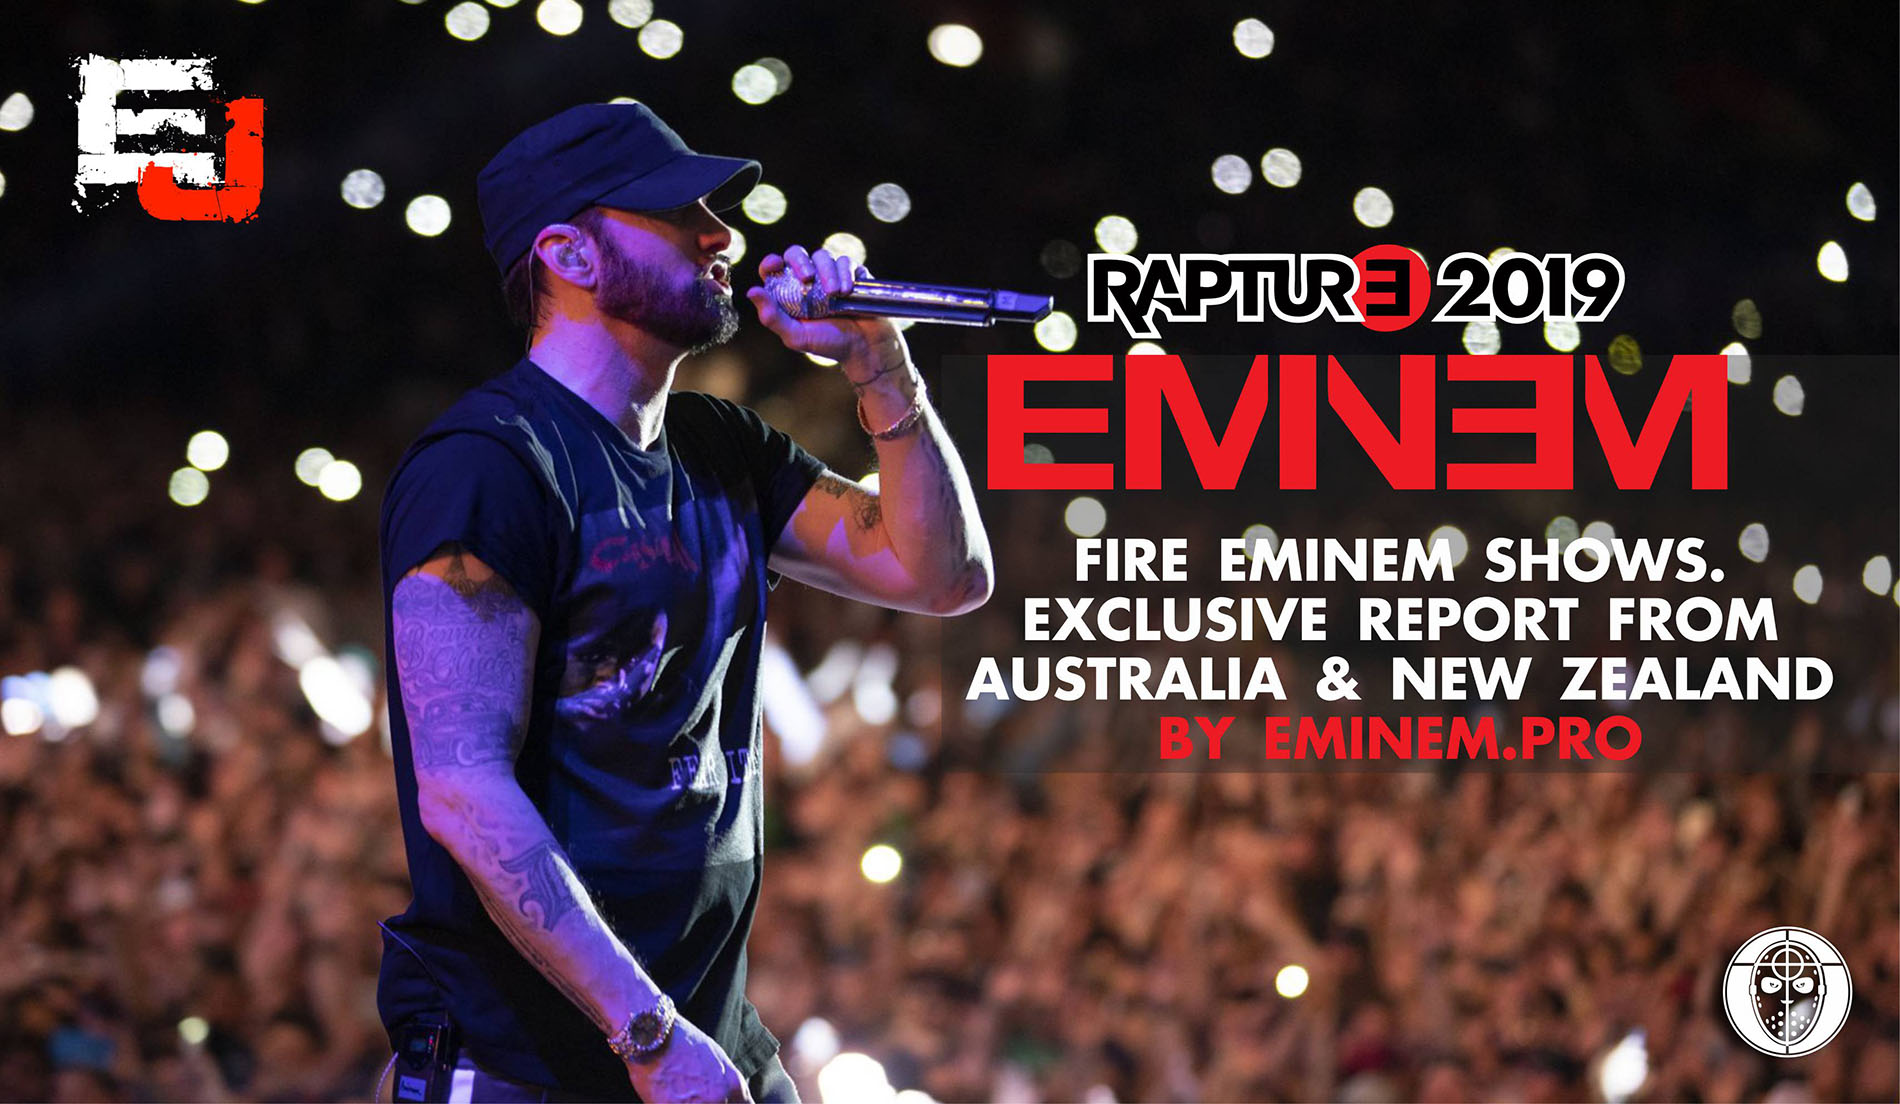 Fire Eminem Shows. Exclusive Report from Australia & New Zealand by Eminem.Pro